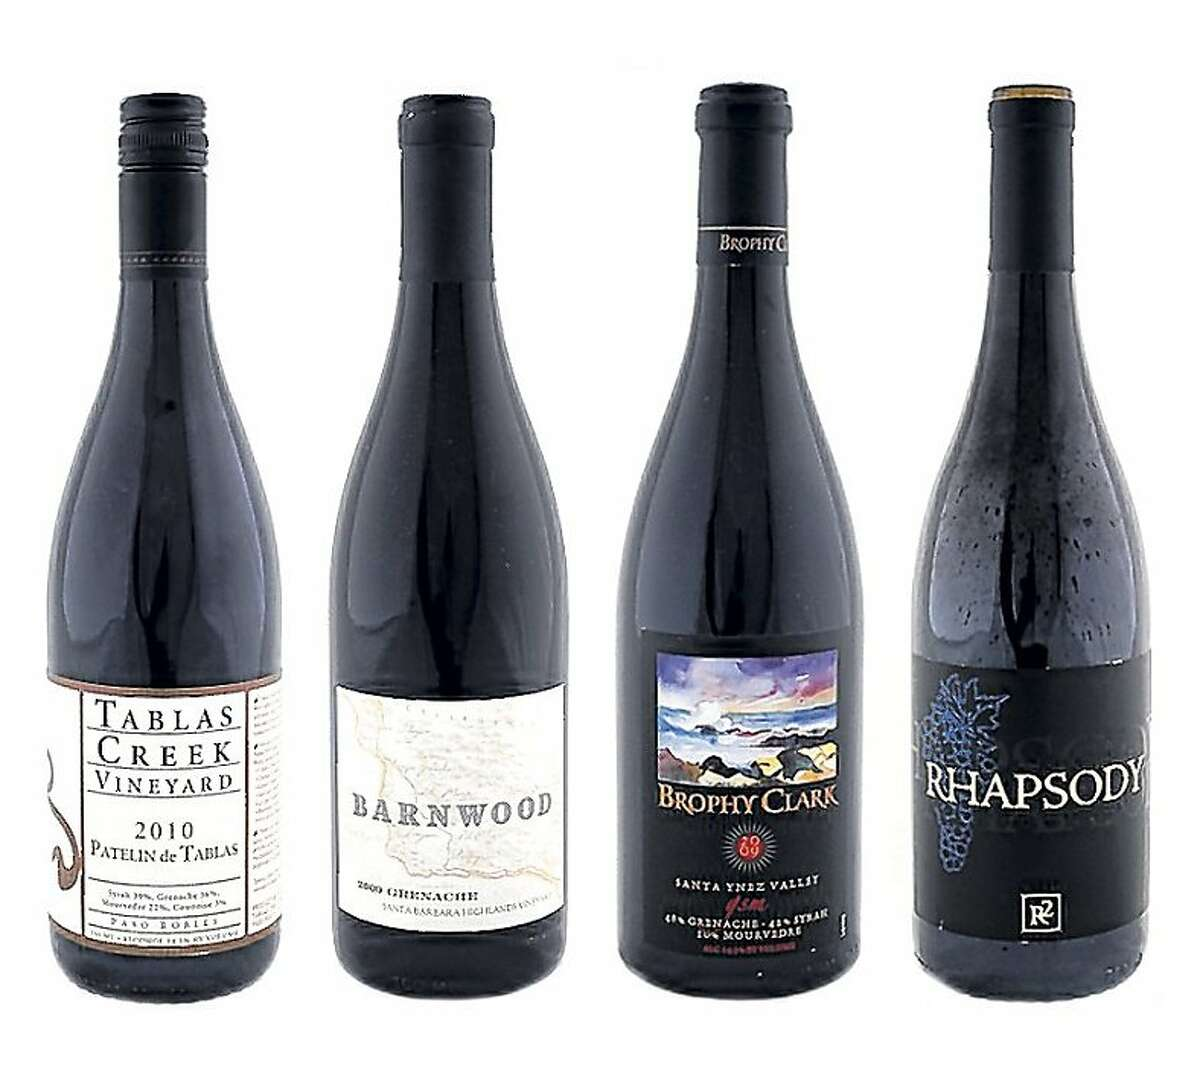 From left. 2010 Tablas Creek Patelin de Tablas Paso Robles Red; 2009 Barnwood Santa Barbara Highlands Vineyard Santa Barbara County Grenache; 2009 Brophy Clark GSM Santa Ynez Valley Red; 2009 R2 Wine Co. Rhapsody en Blu Santa Ynez Valley Red ###Live Caption:2010 Tablas Creek Patelin de Tablas Paso Robles Red as seen in San Francisco, California, on Wednesday, August 17, 2011.###Caption History:2010 Tablas Creek Patelin de Tablas Paso Robles Red as seen in San Francisco, California, on Wednesday, August 17, 2011.###Notes:###Special Instructions:MANDATORY CREDIT FOR PHOTOG AND SF CHRONICLE/NO SALES-MAGS OUT-INTERNET_OUT-TV OUT Food#Food#Broadsheet#08/21/2011#ALL#Advance2##0503968025